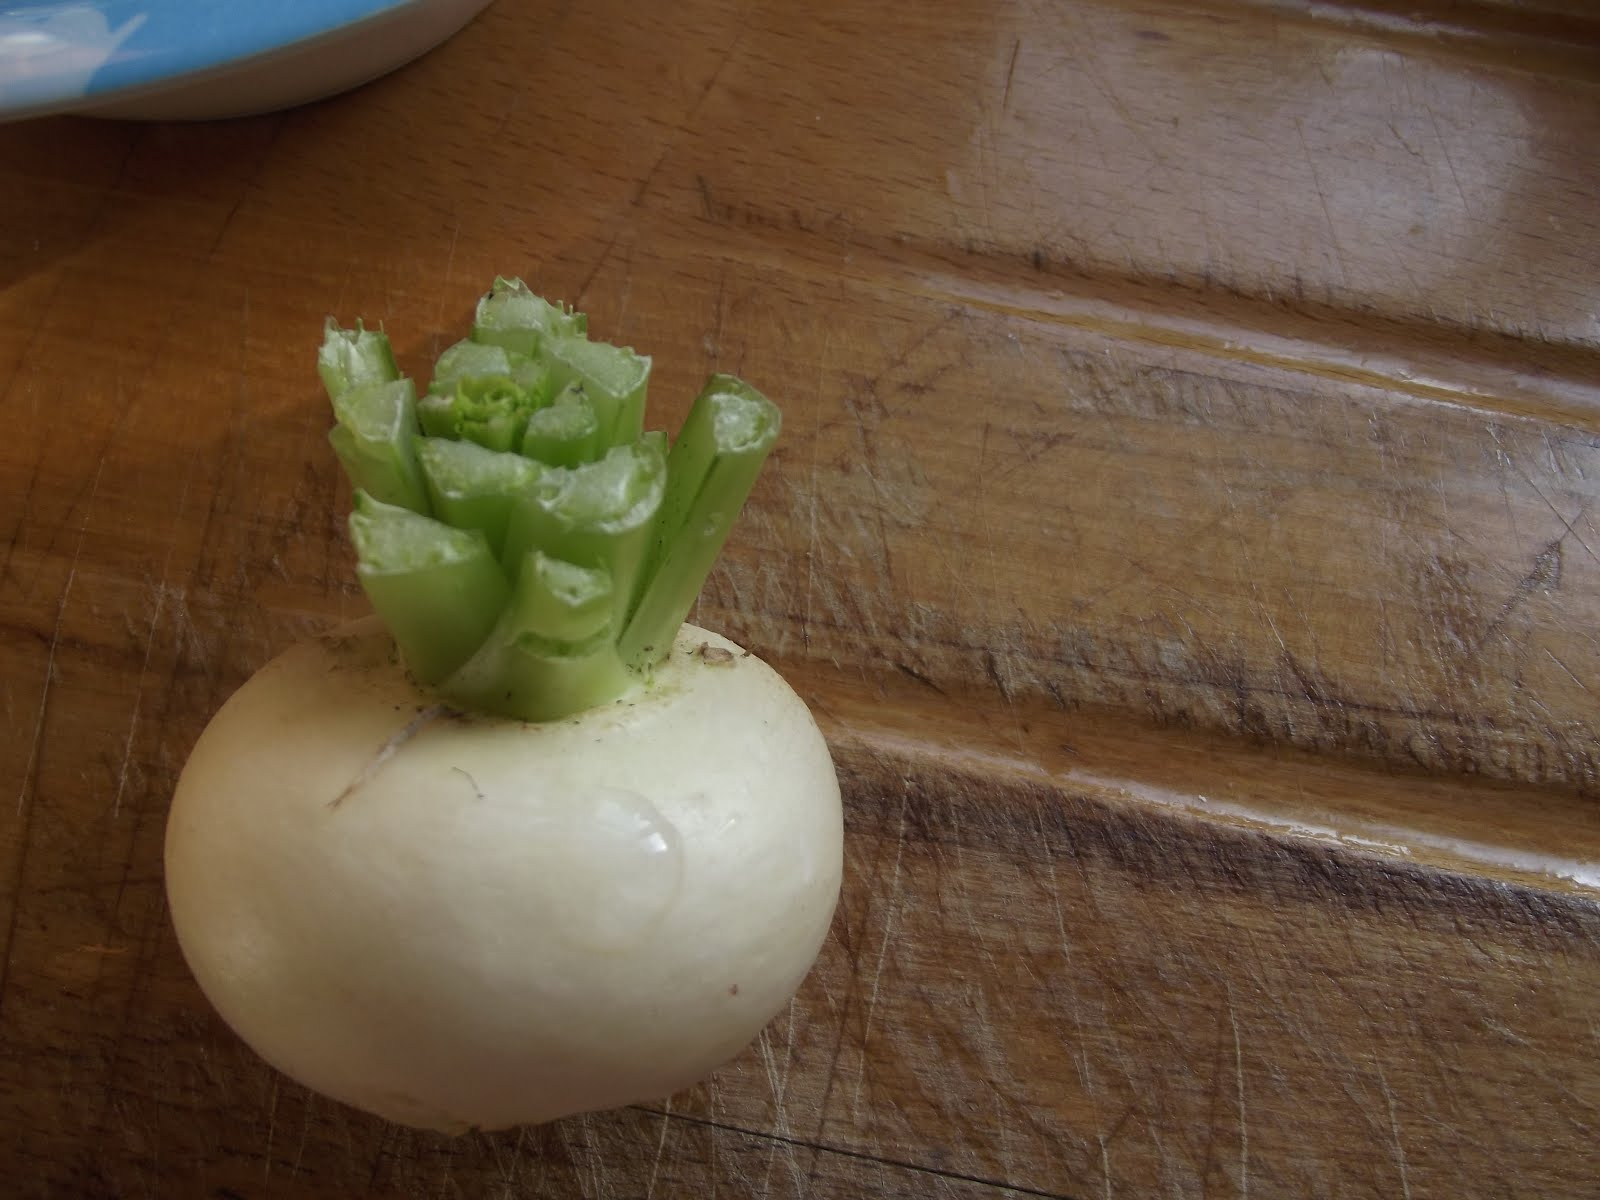 Nice little turnip!